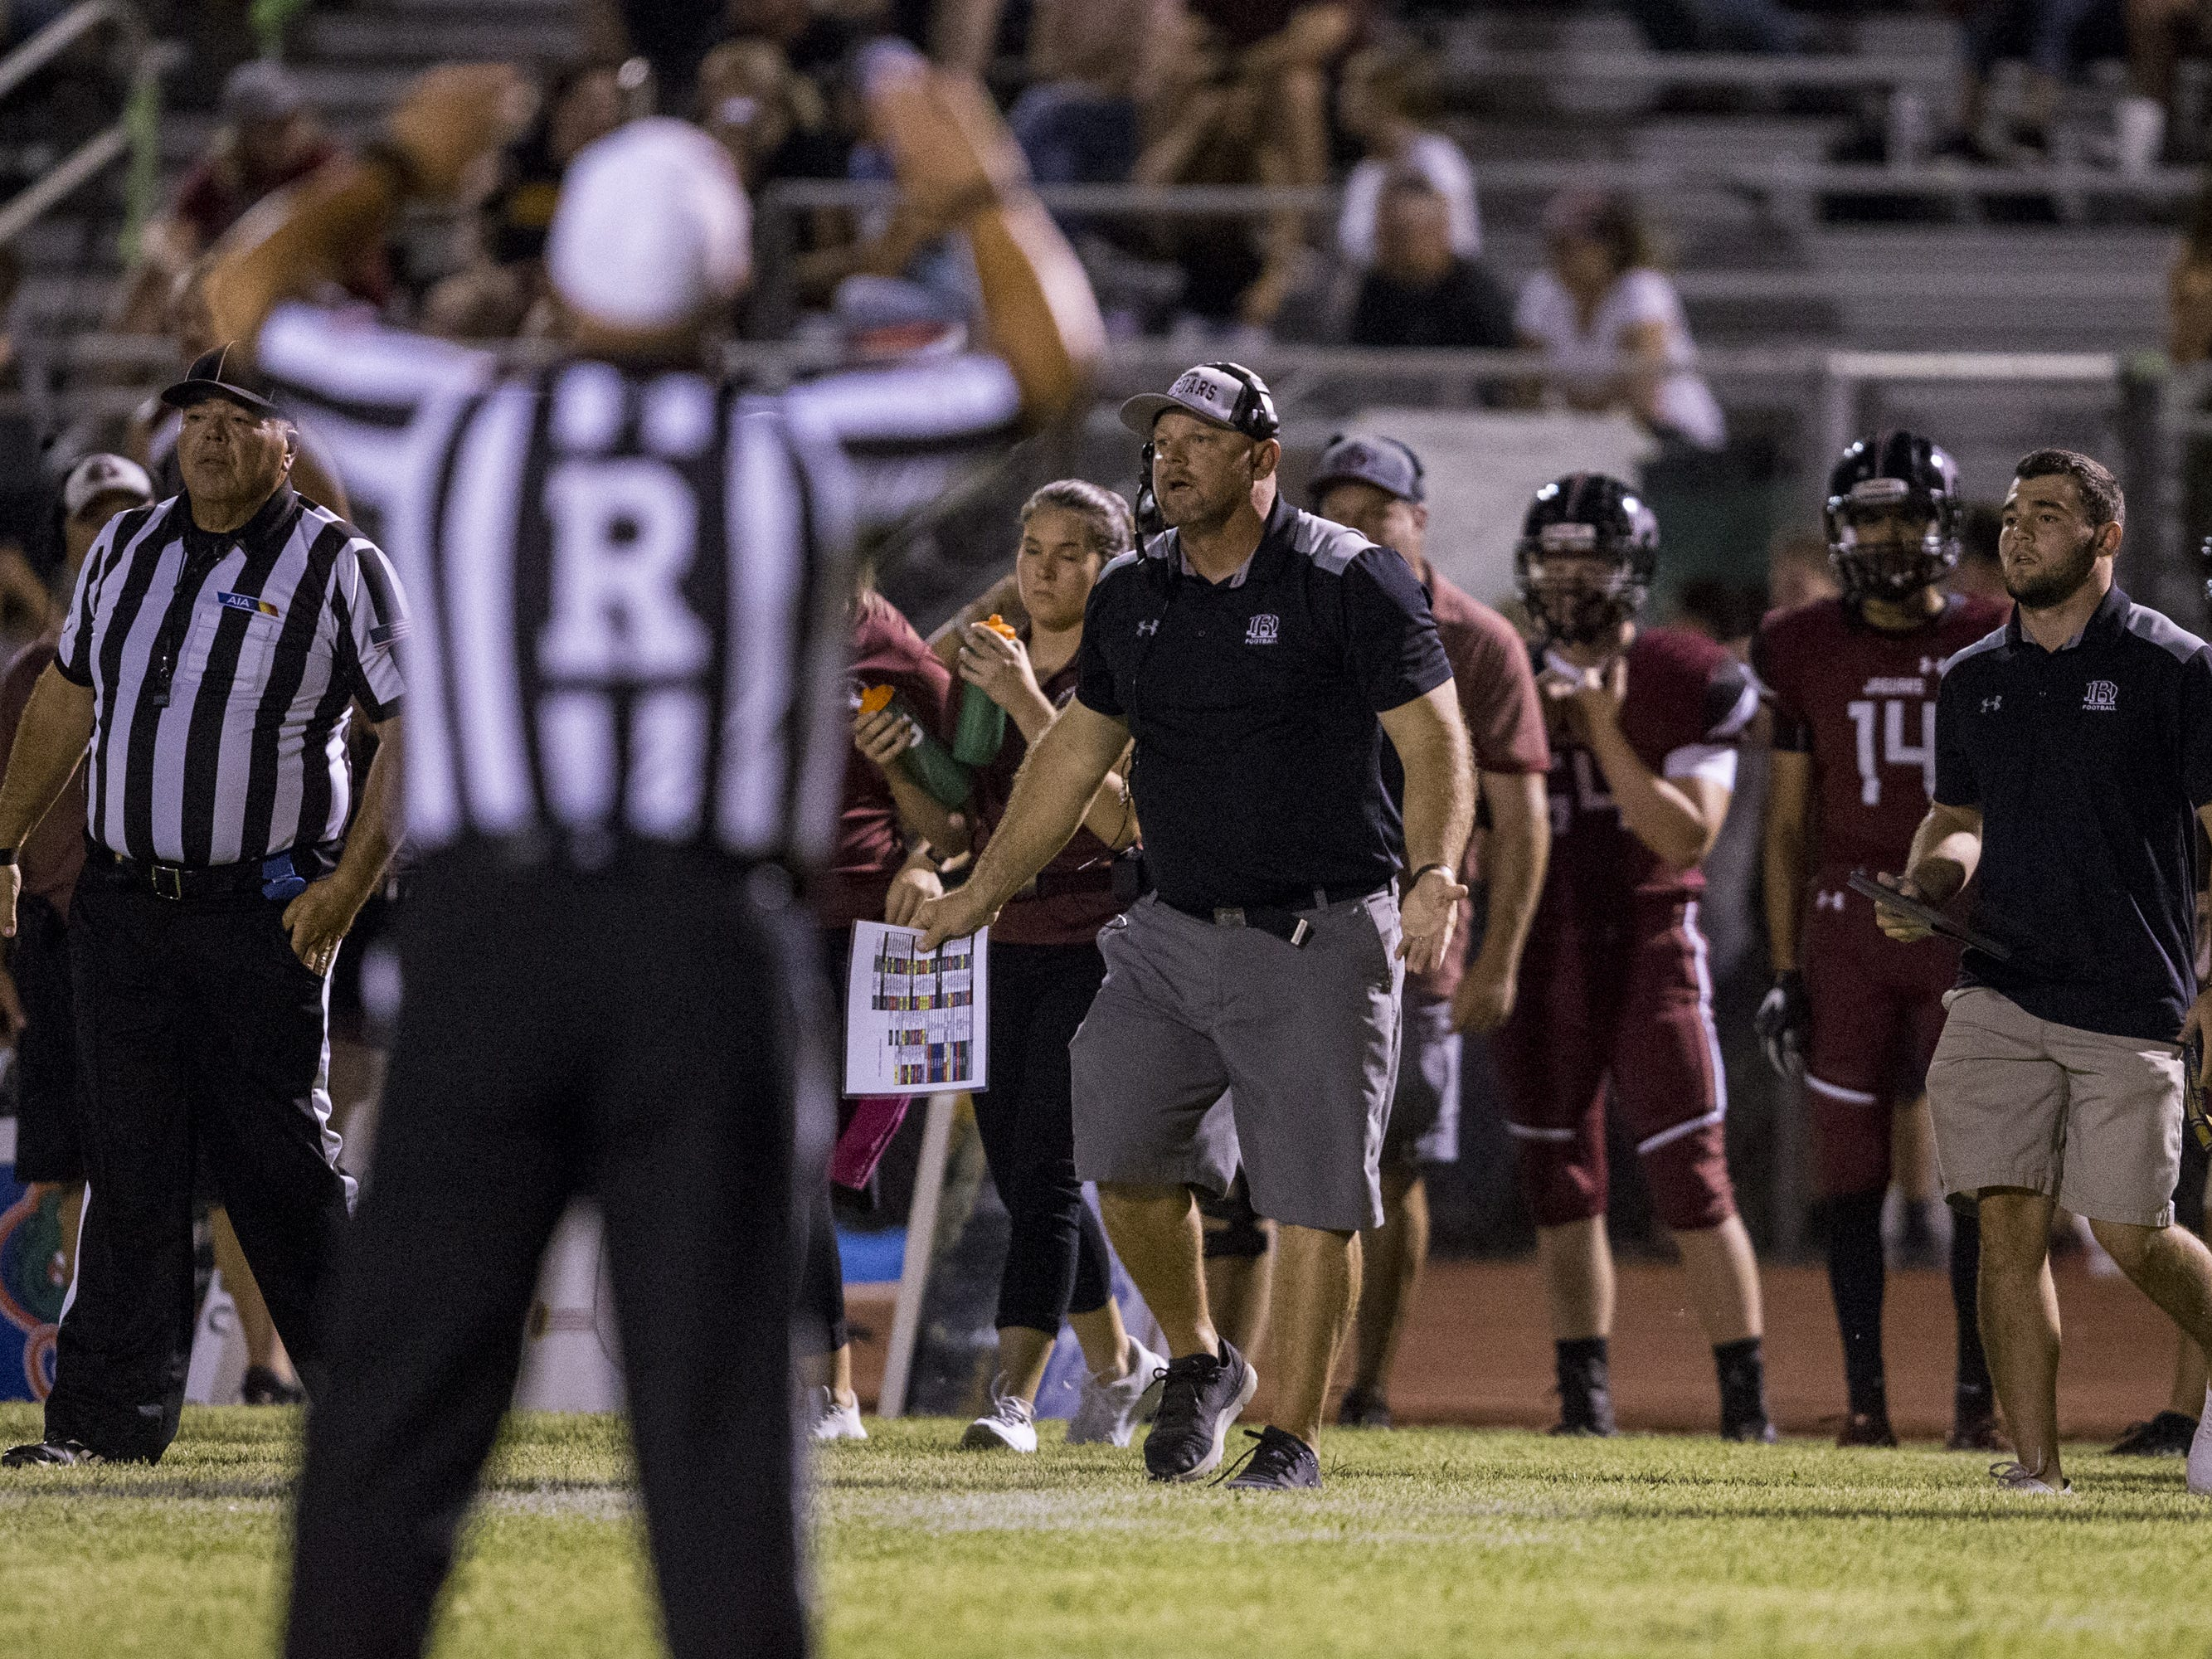 Desert Ridge head coach Jeremy Hathcock watches during the game against Liberty in the 2nd quarter on Friday, Sept. 7, 2018, at Desert Ridge High School in Mesa, Ariz.  #azhsfb